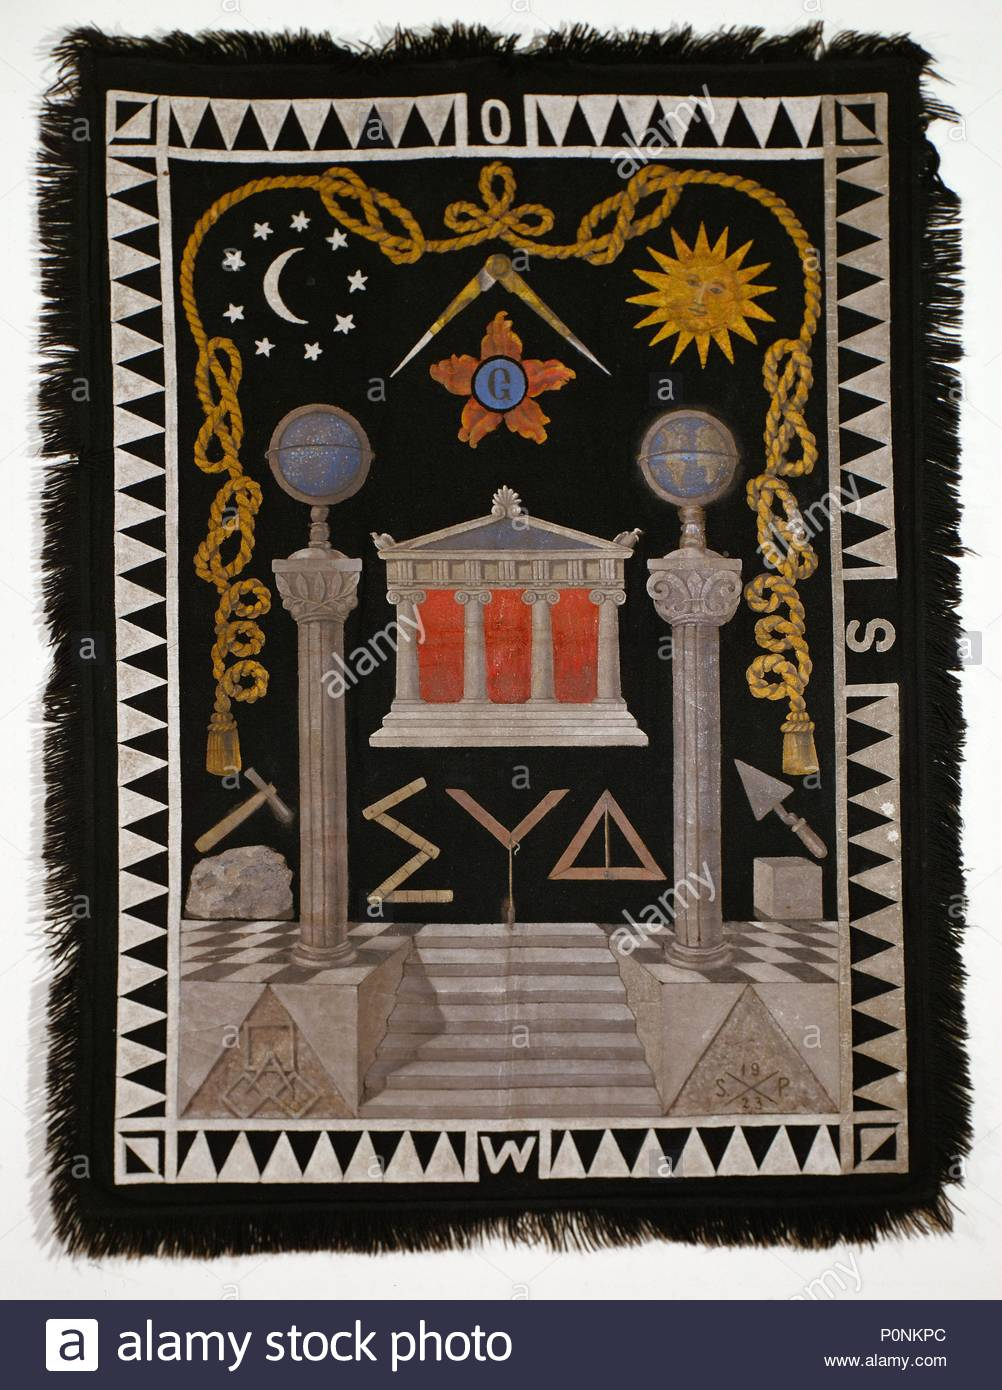 Freemasons Rug From A Lodge Symbols Include A Masonic Temple